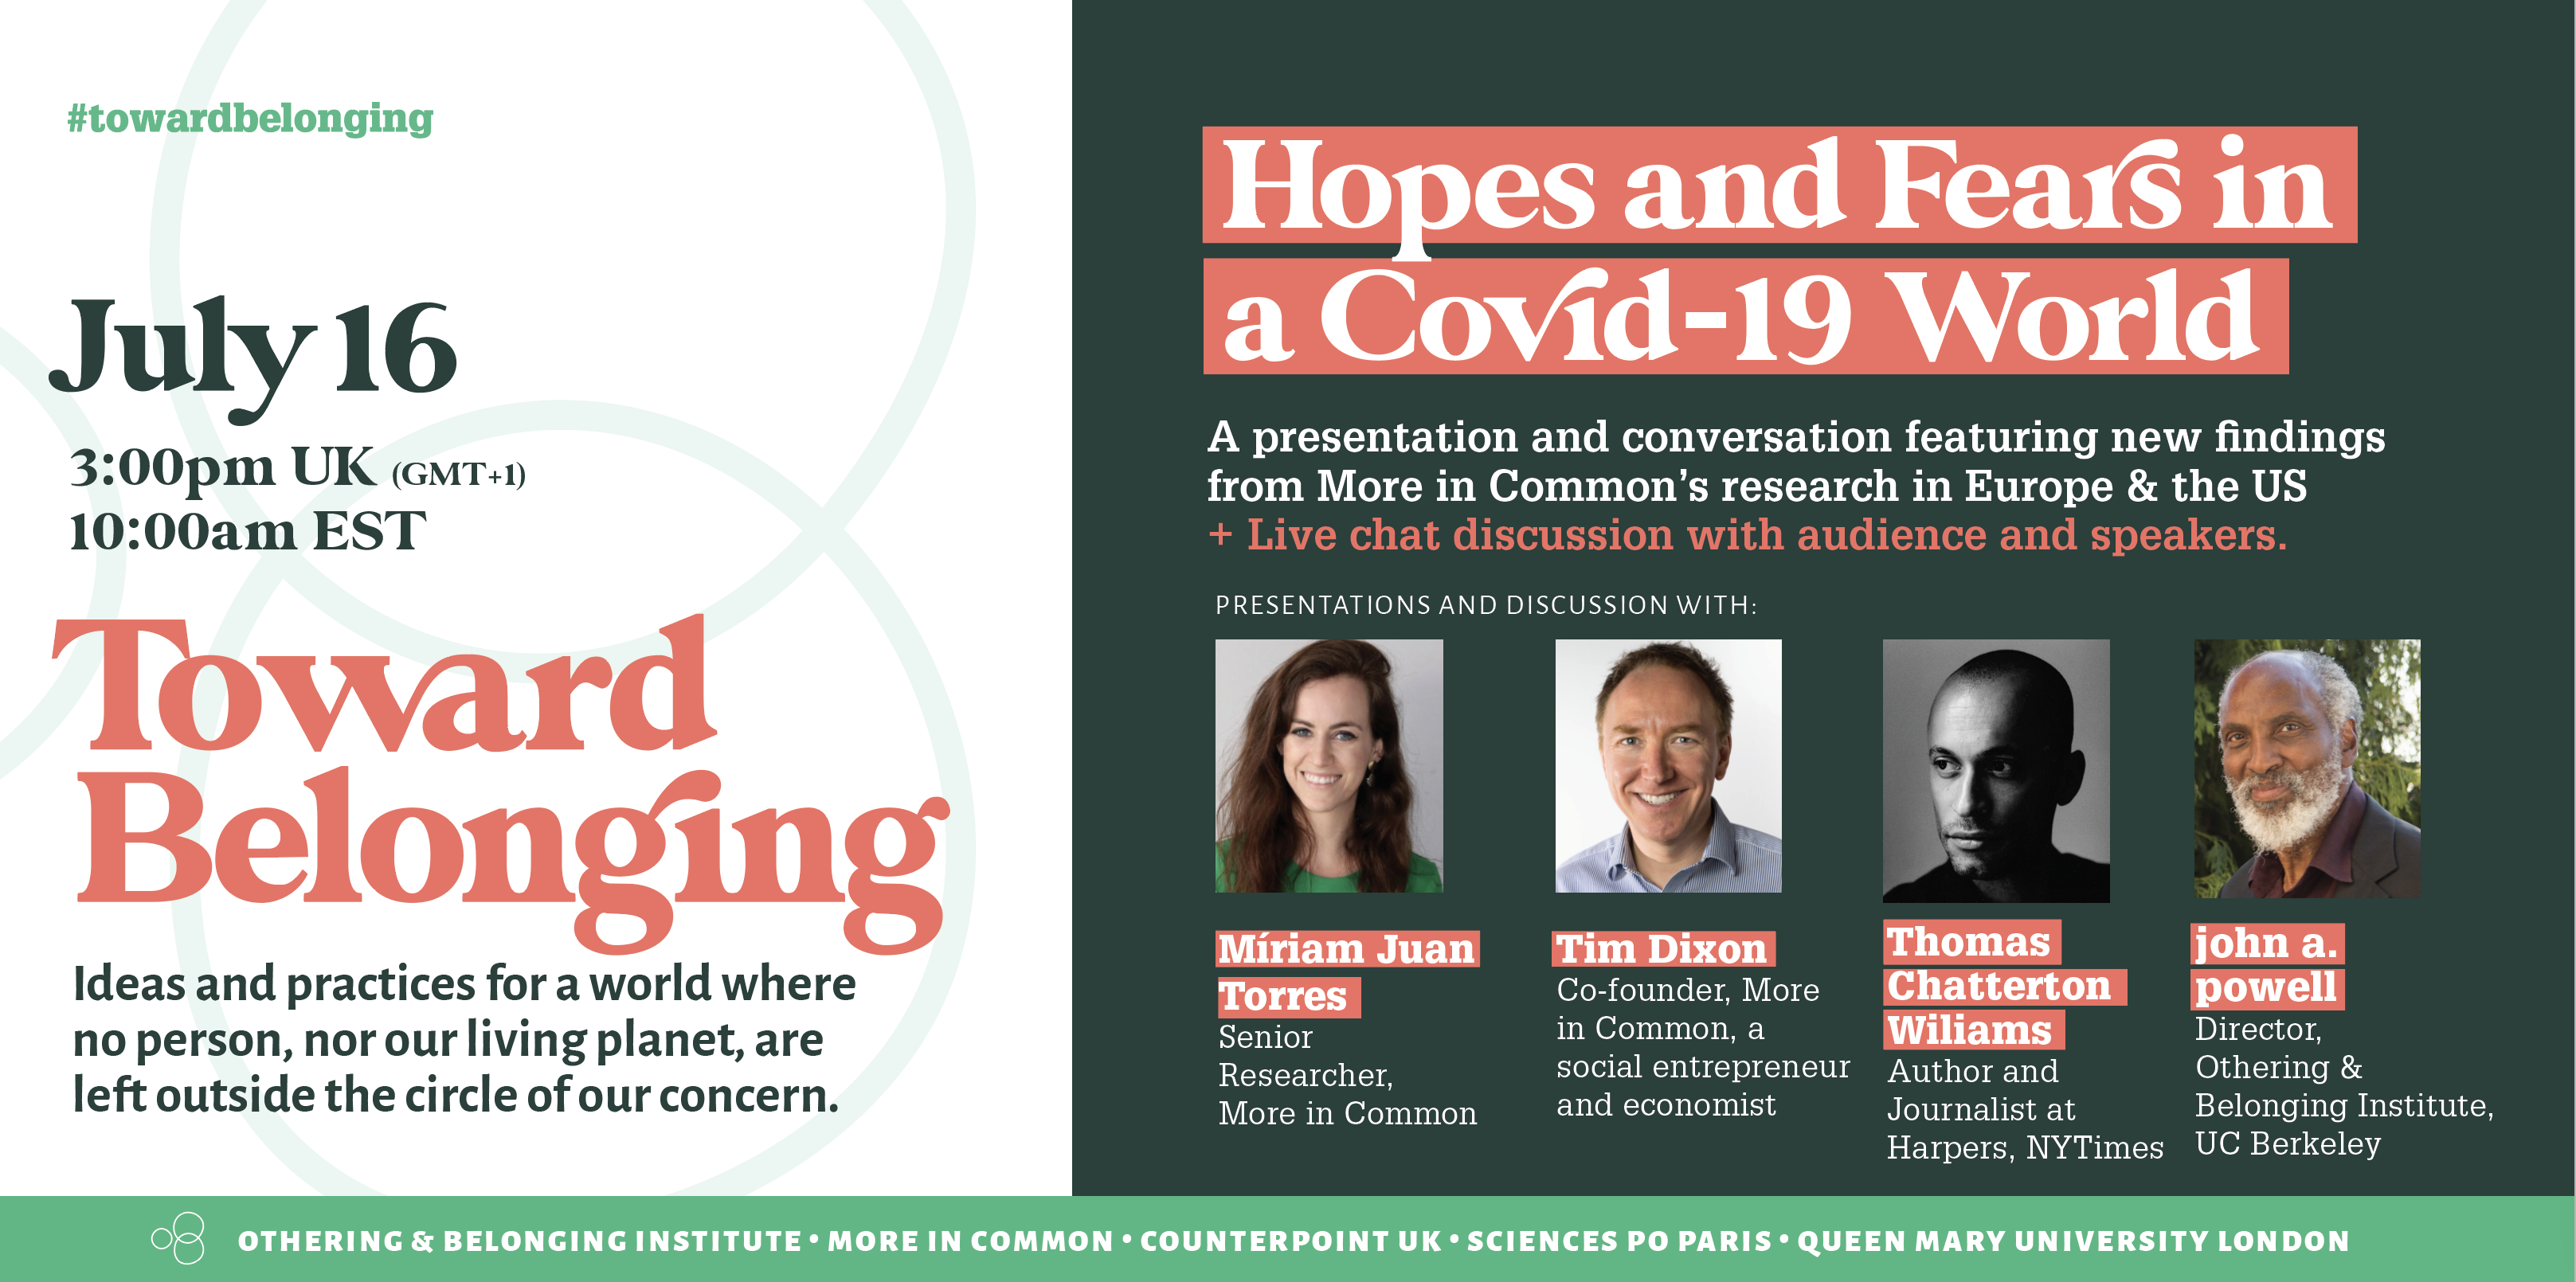 Dark green graphic with four headshots of speakers speaking on Toward Belonging July 16 event